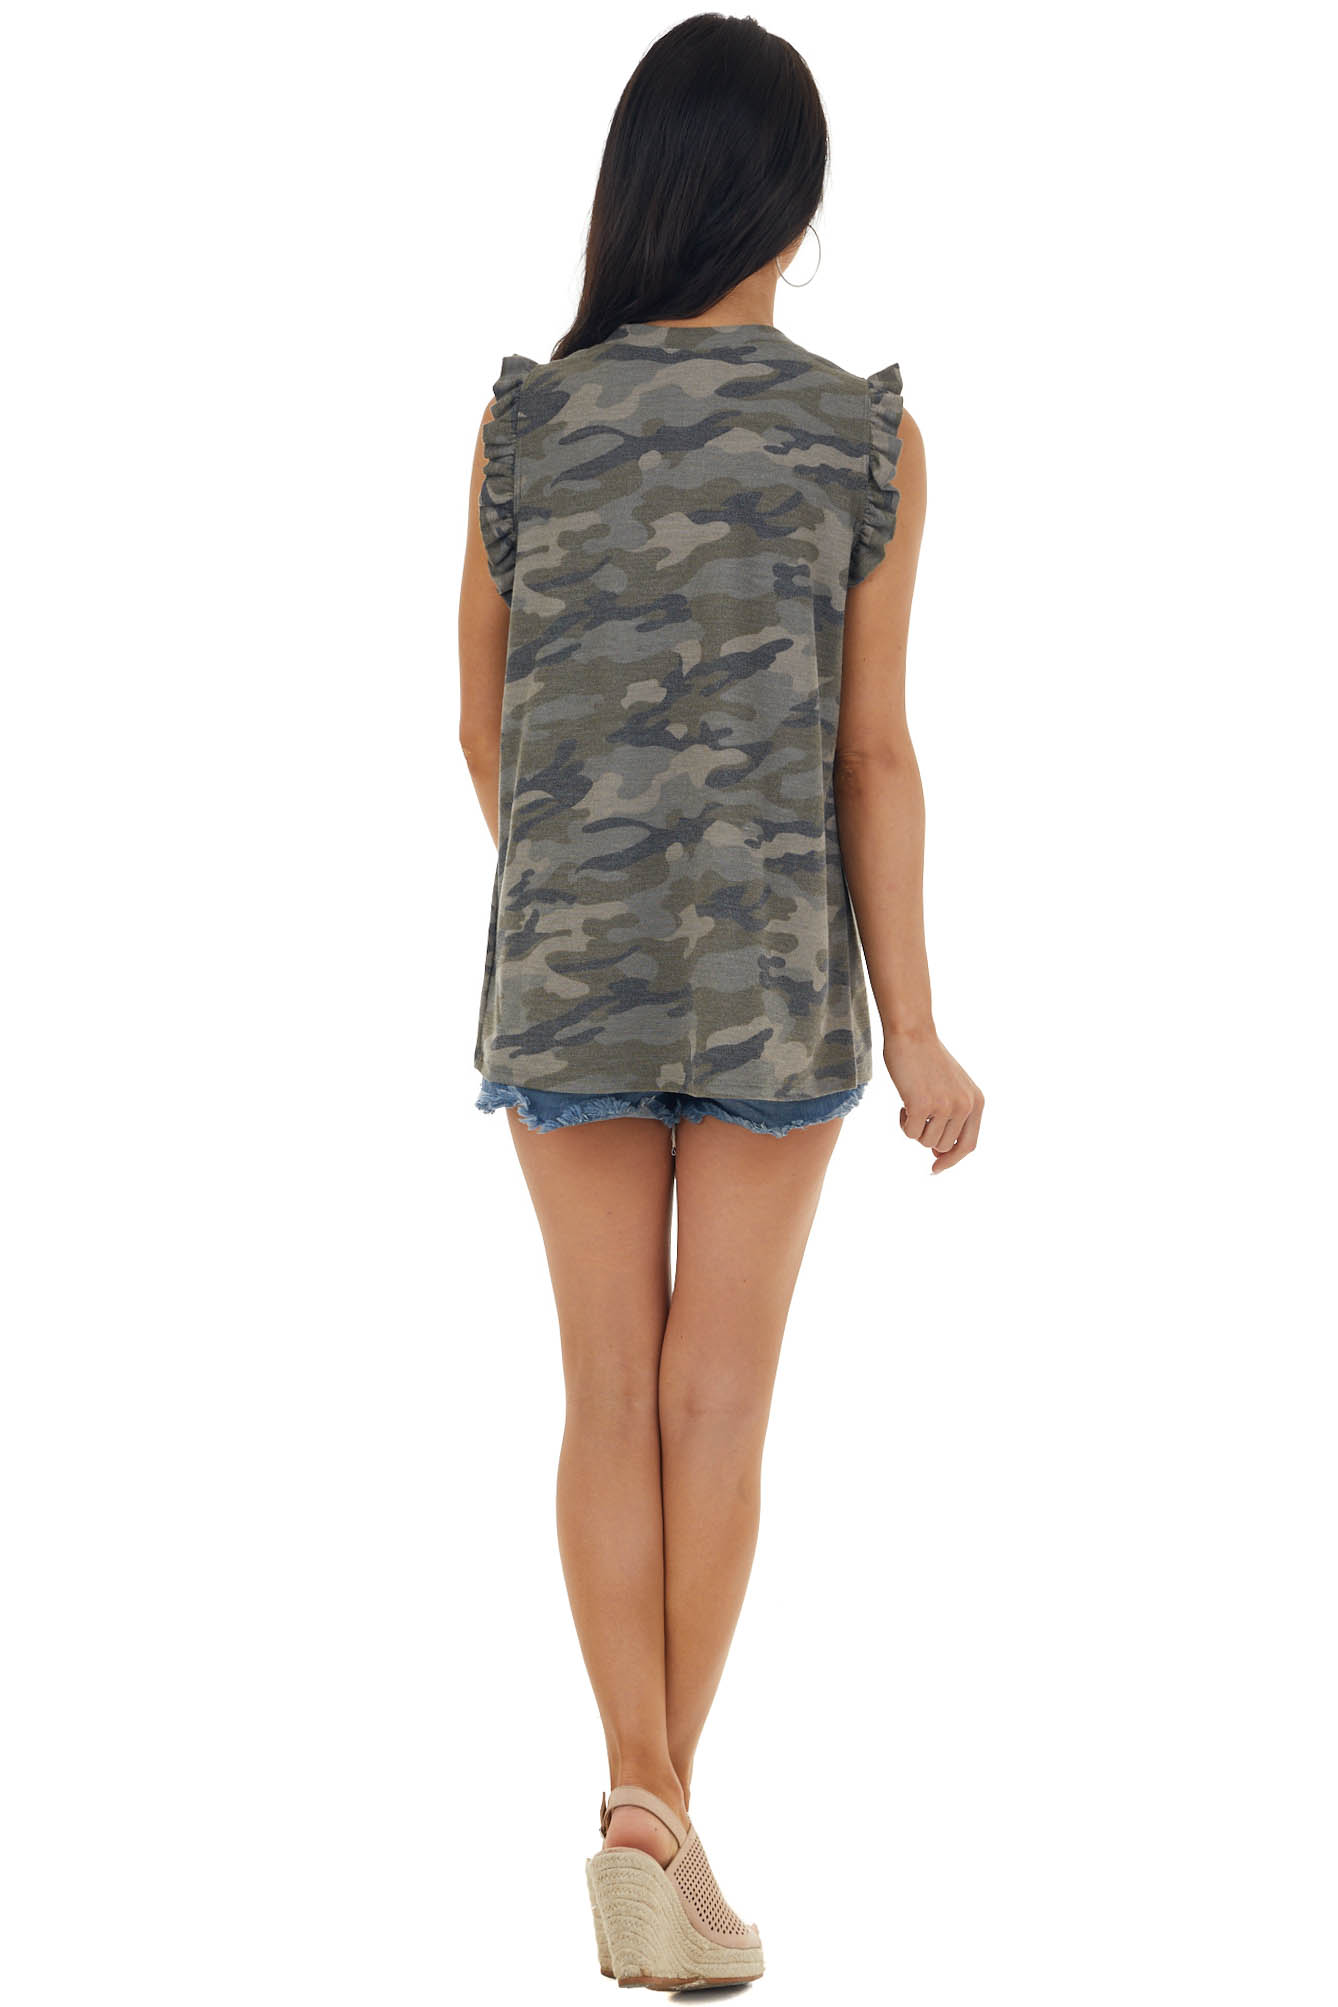 Army Green Camo Print Knit Top with Sequined Skull Graphic